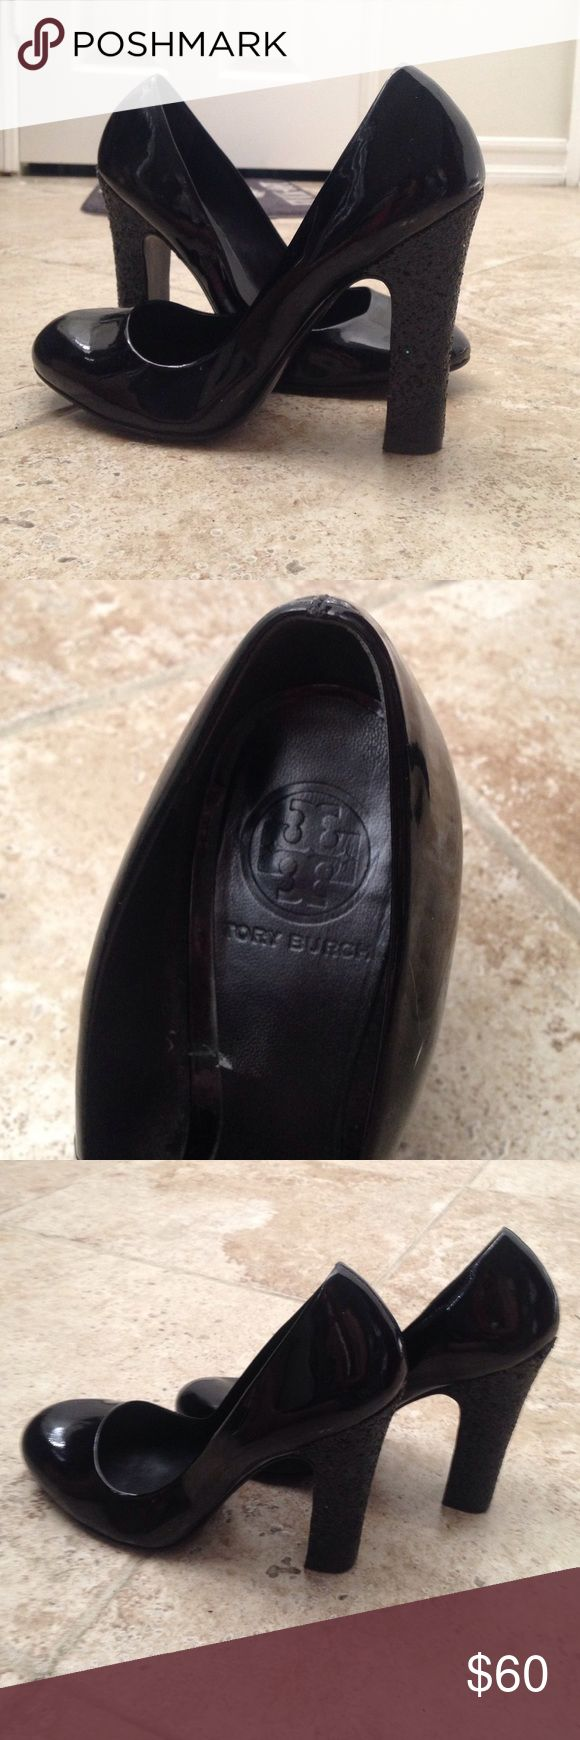 Tory Burch Colin Black Patent Leather Heels Size 8 1/2 M. They do have a couple like scuff marks on them, but nothing noticeable unless you look up close. Still in very good condition. Tory Burch Shoes Heels